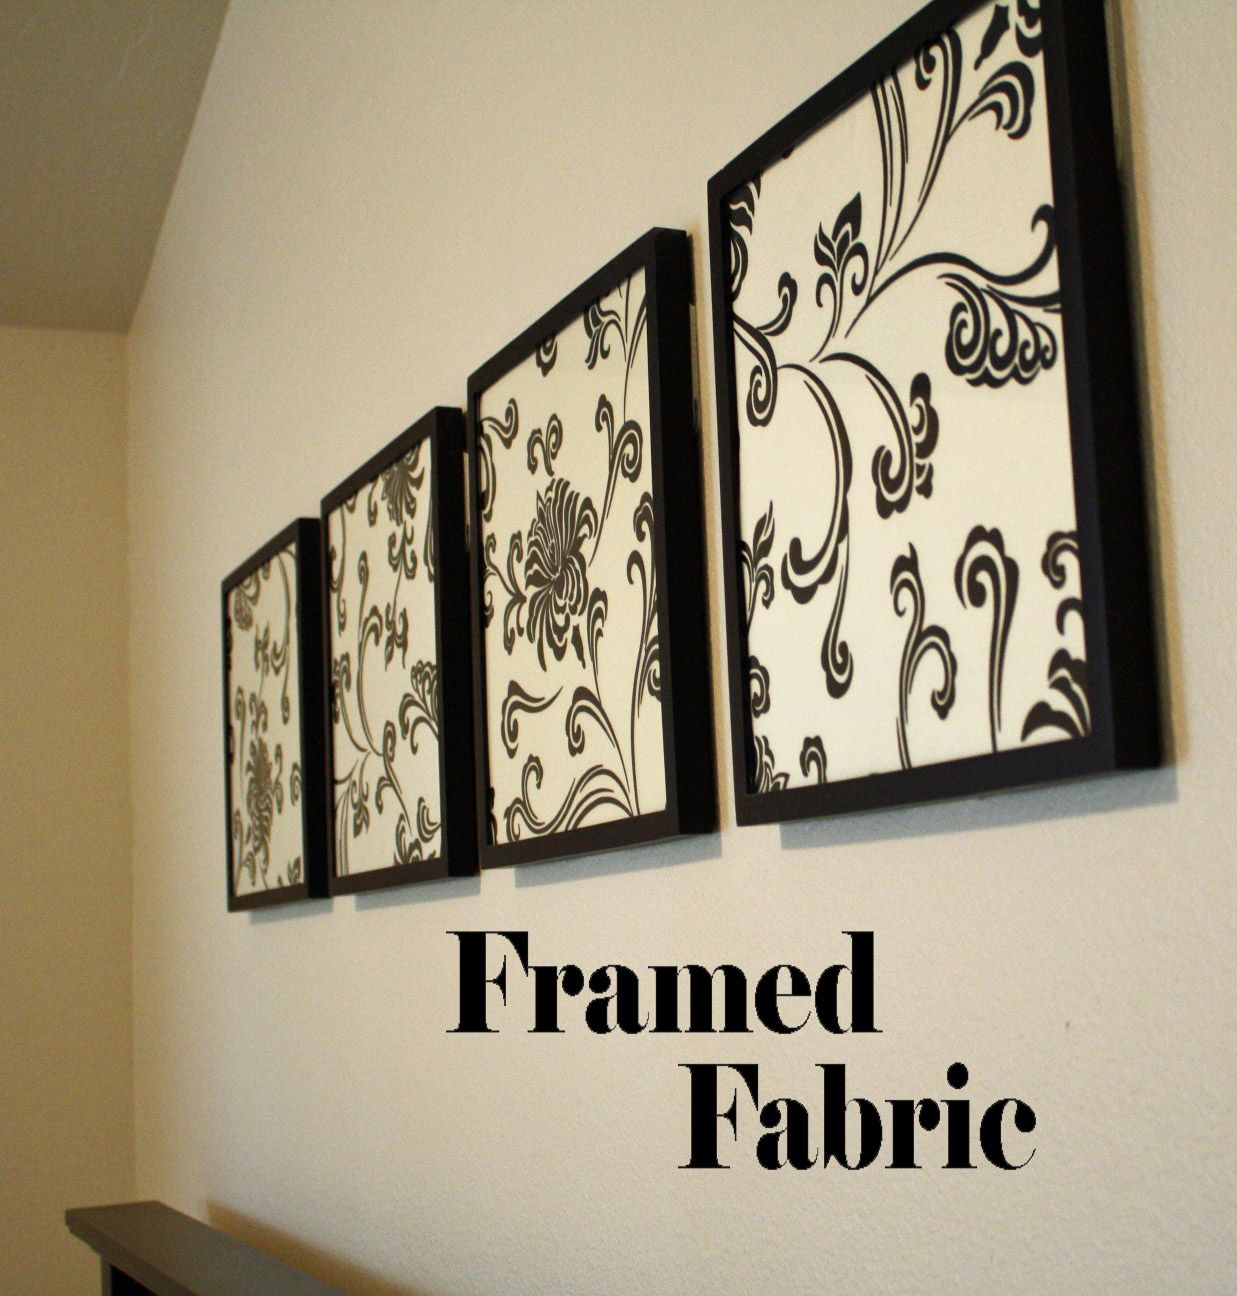 Framed fabric wall decor find a cute fabric that matches your